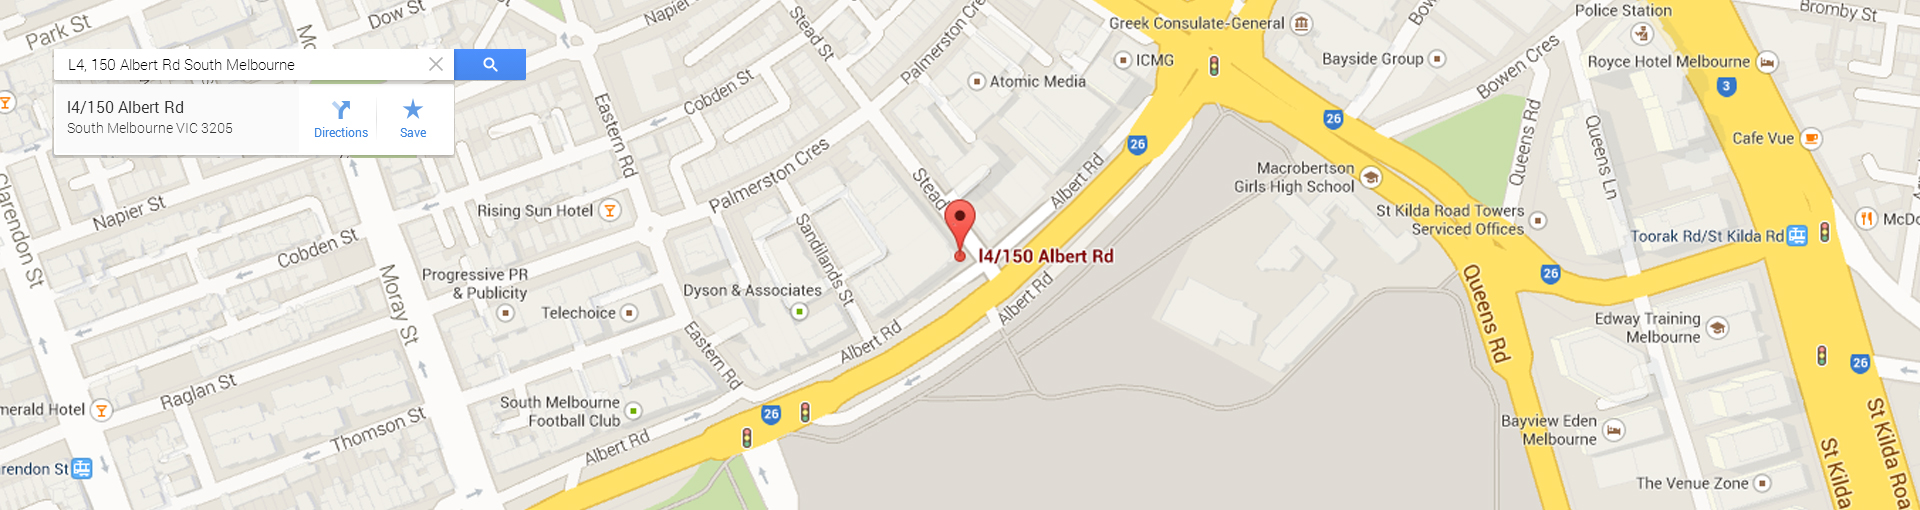 Google-Map-Melbourne